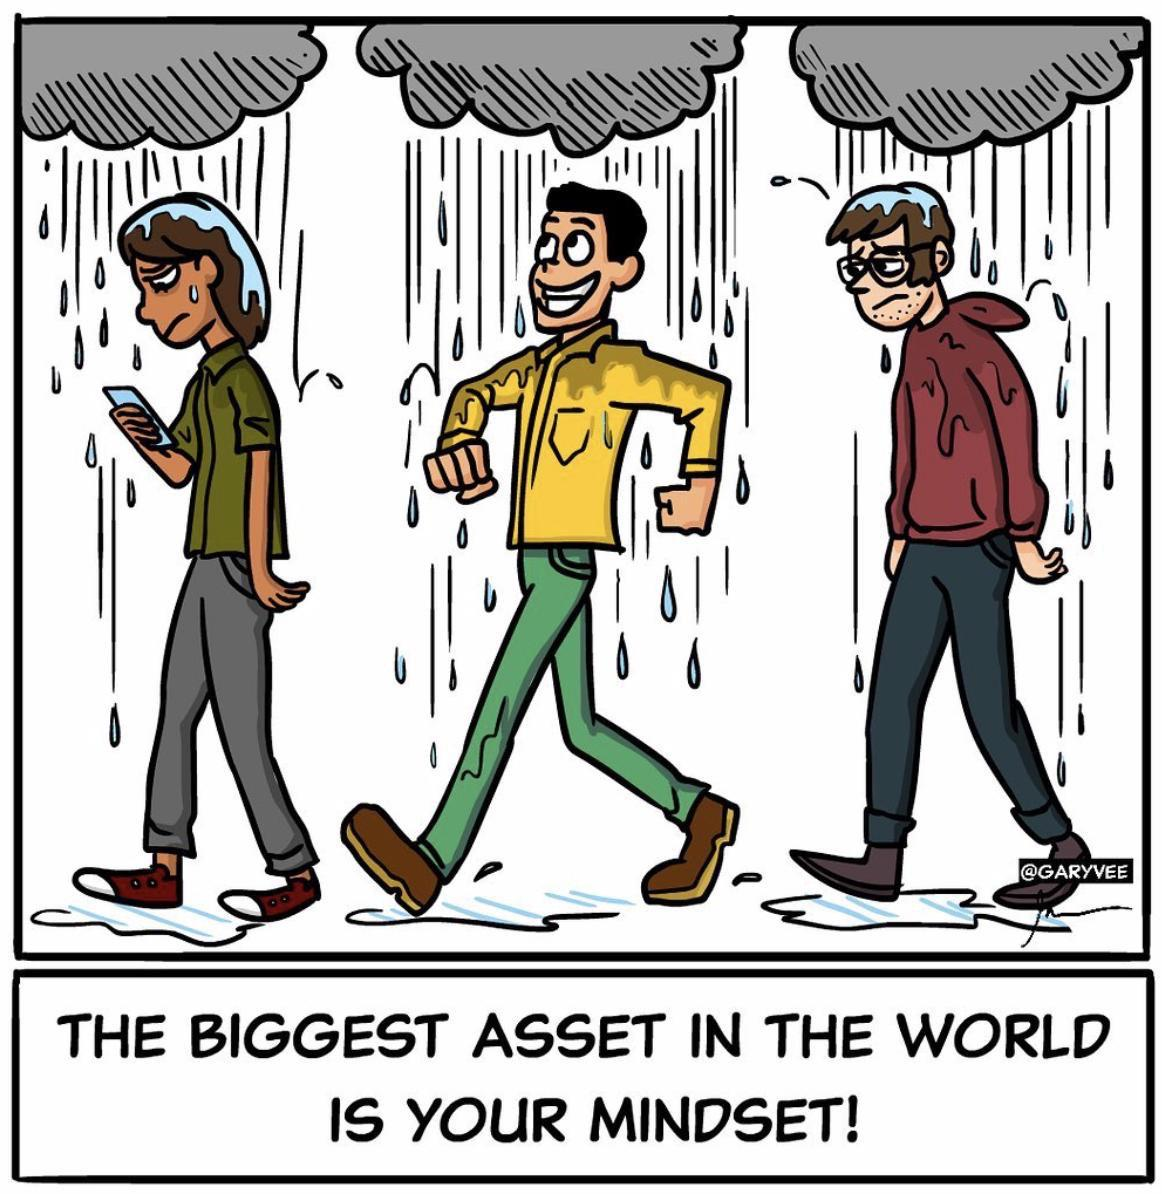 THE BIGGEST ASSET IN THE WORLD IS YOUR MINDSET! https://inspirational.ly